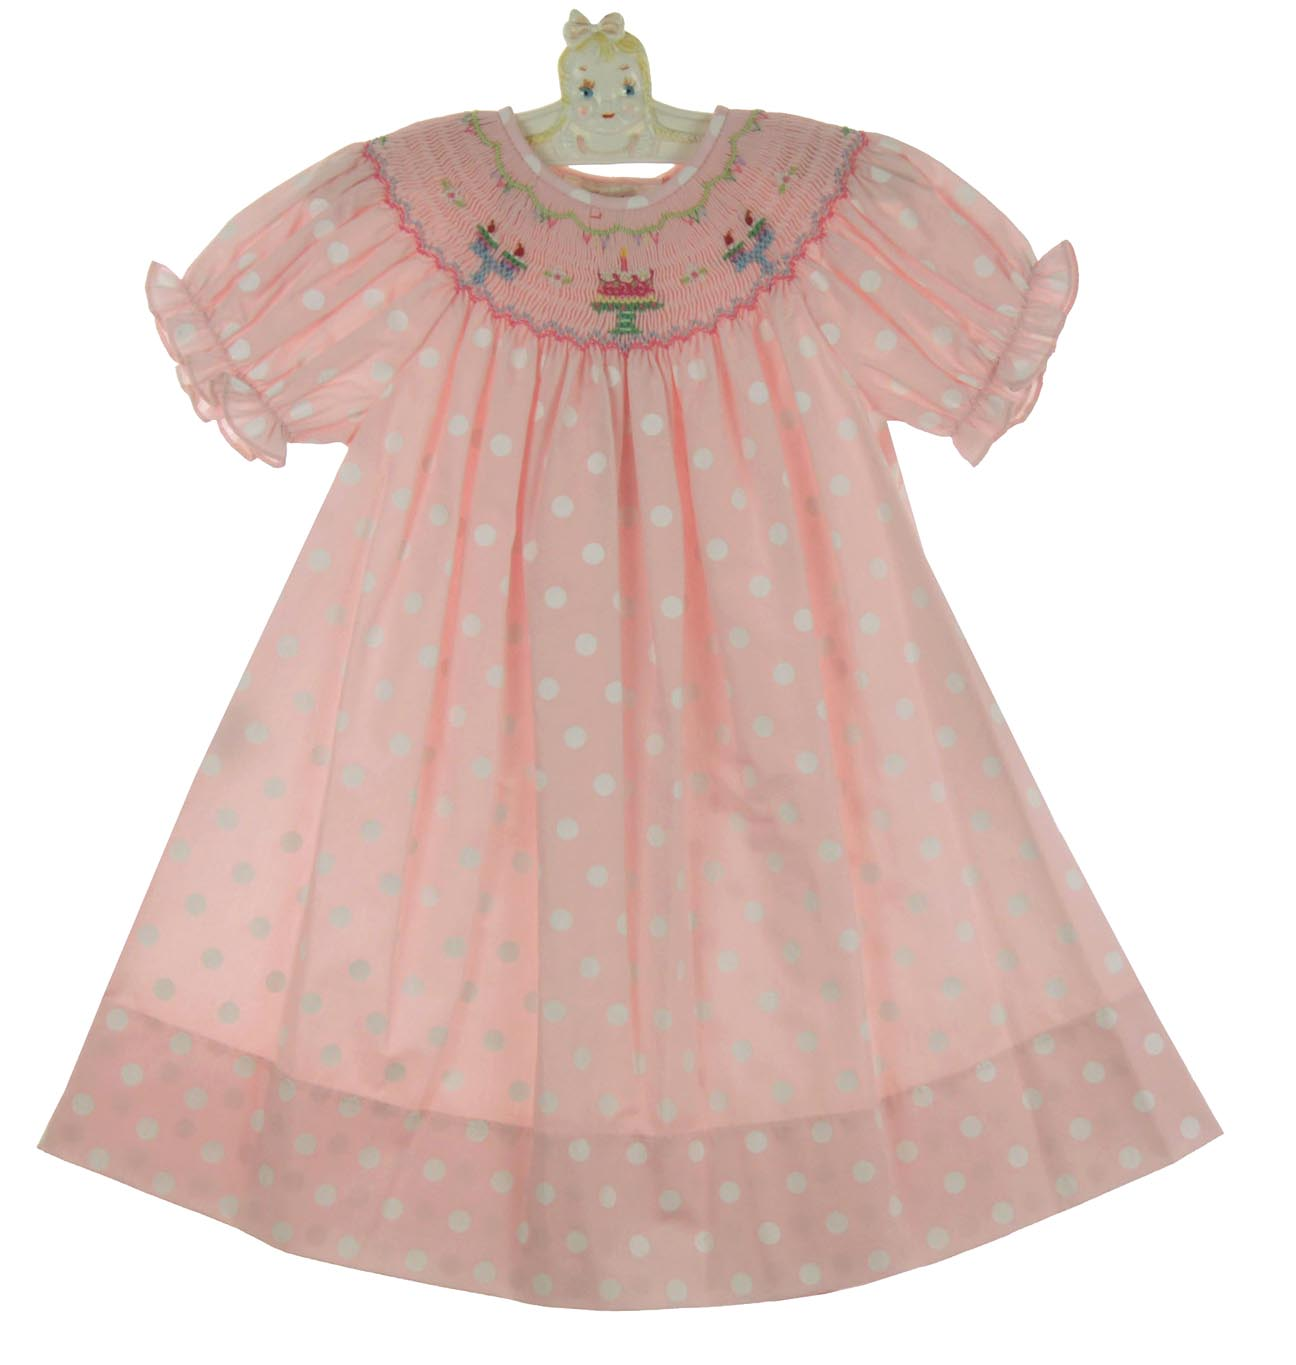 Rosalina Pink Polka Dot Birthday DressRosalina Bishop Smocked